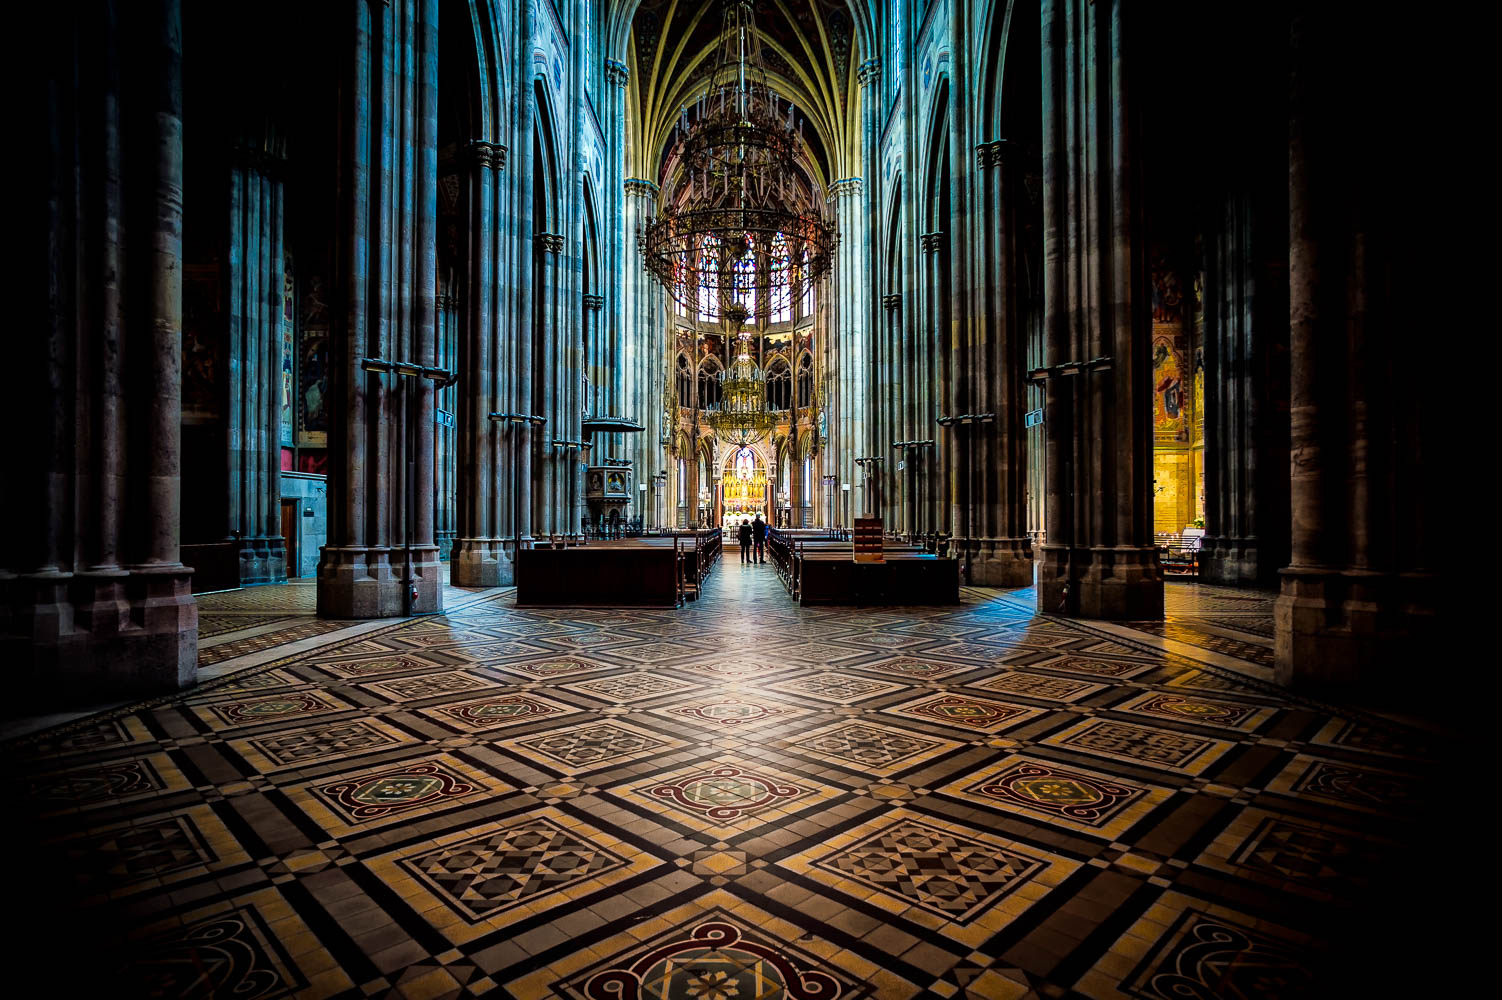 Vienna 28 by calimer00